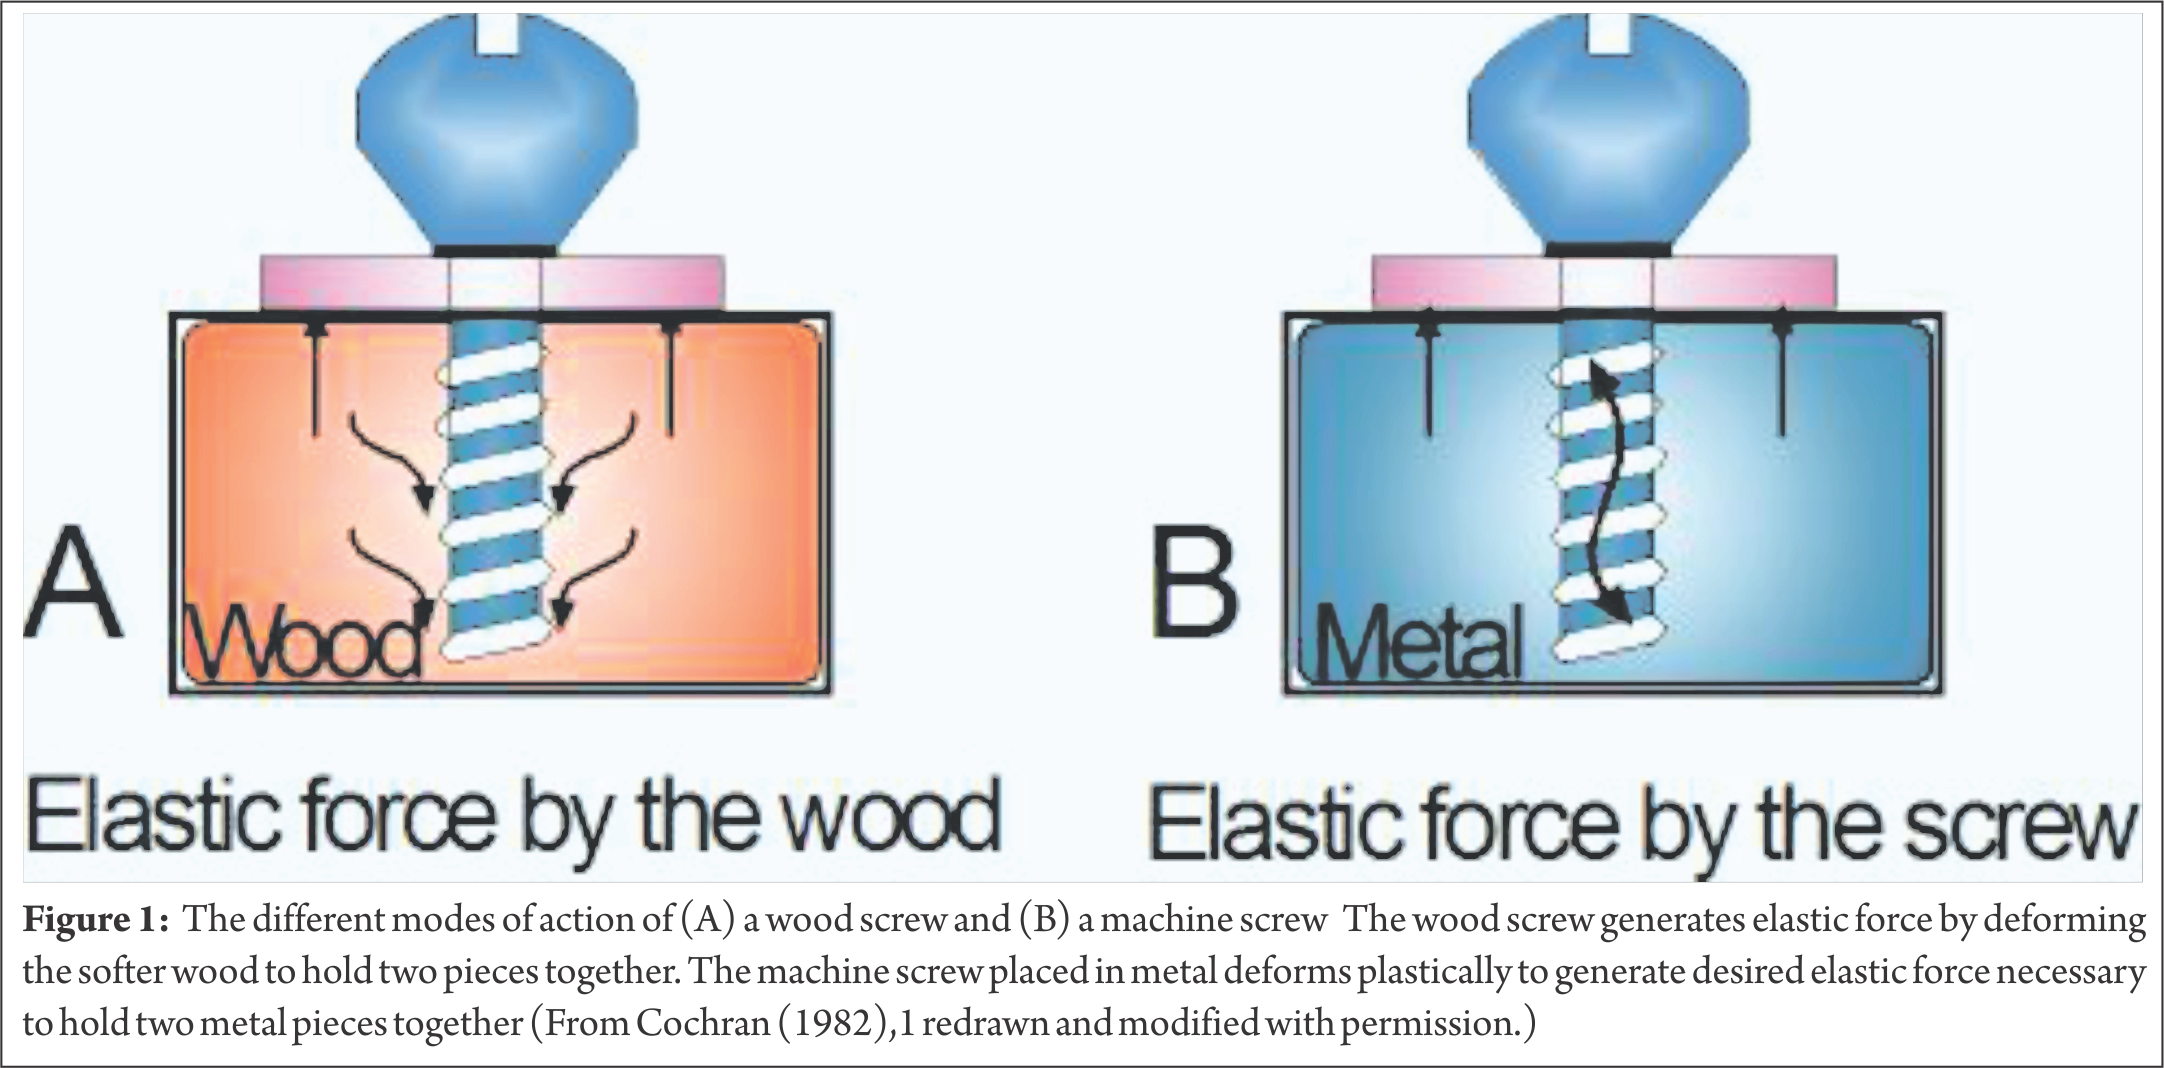 Shears clipart thread. Biomechanics of cancellous screw